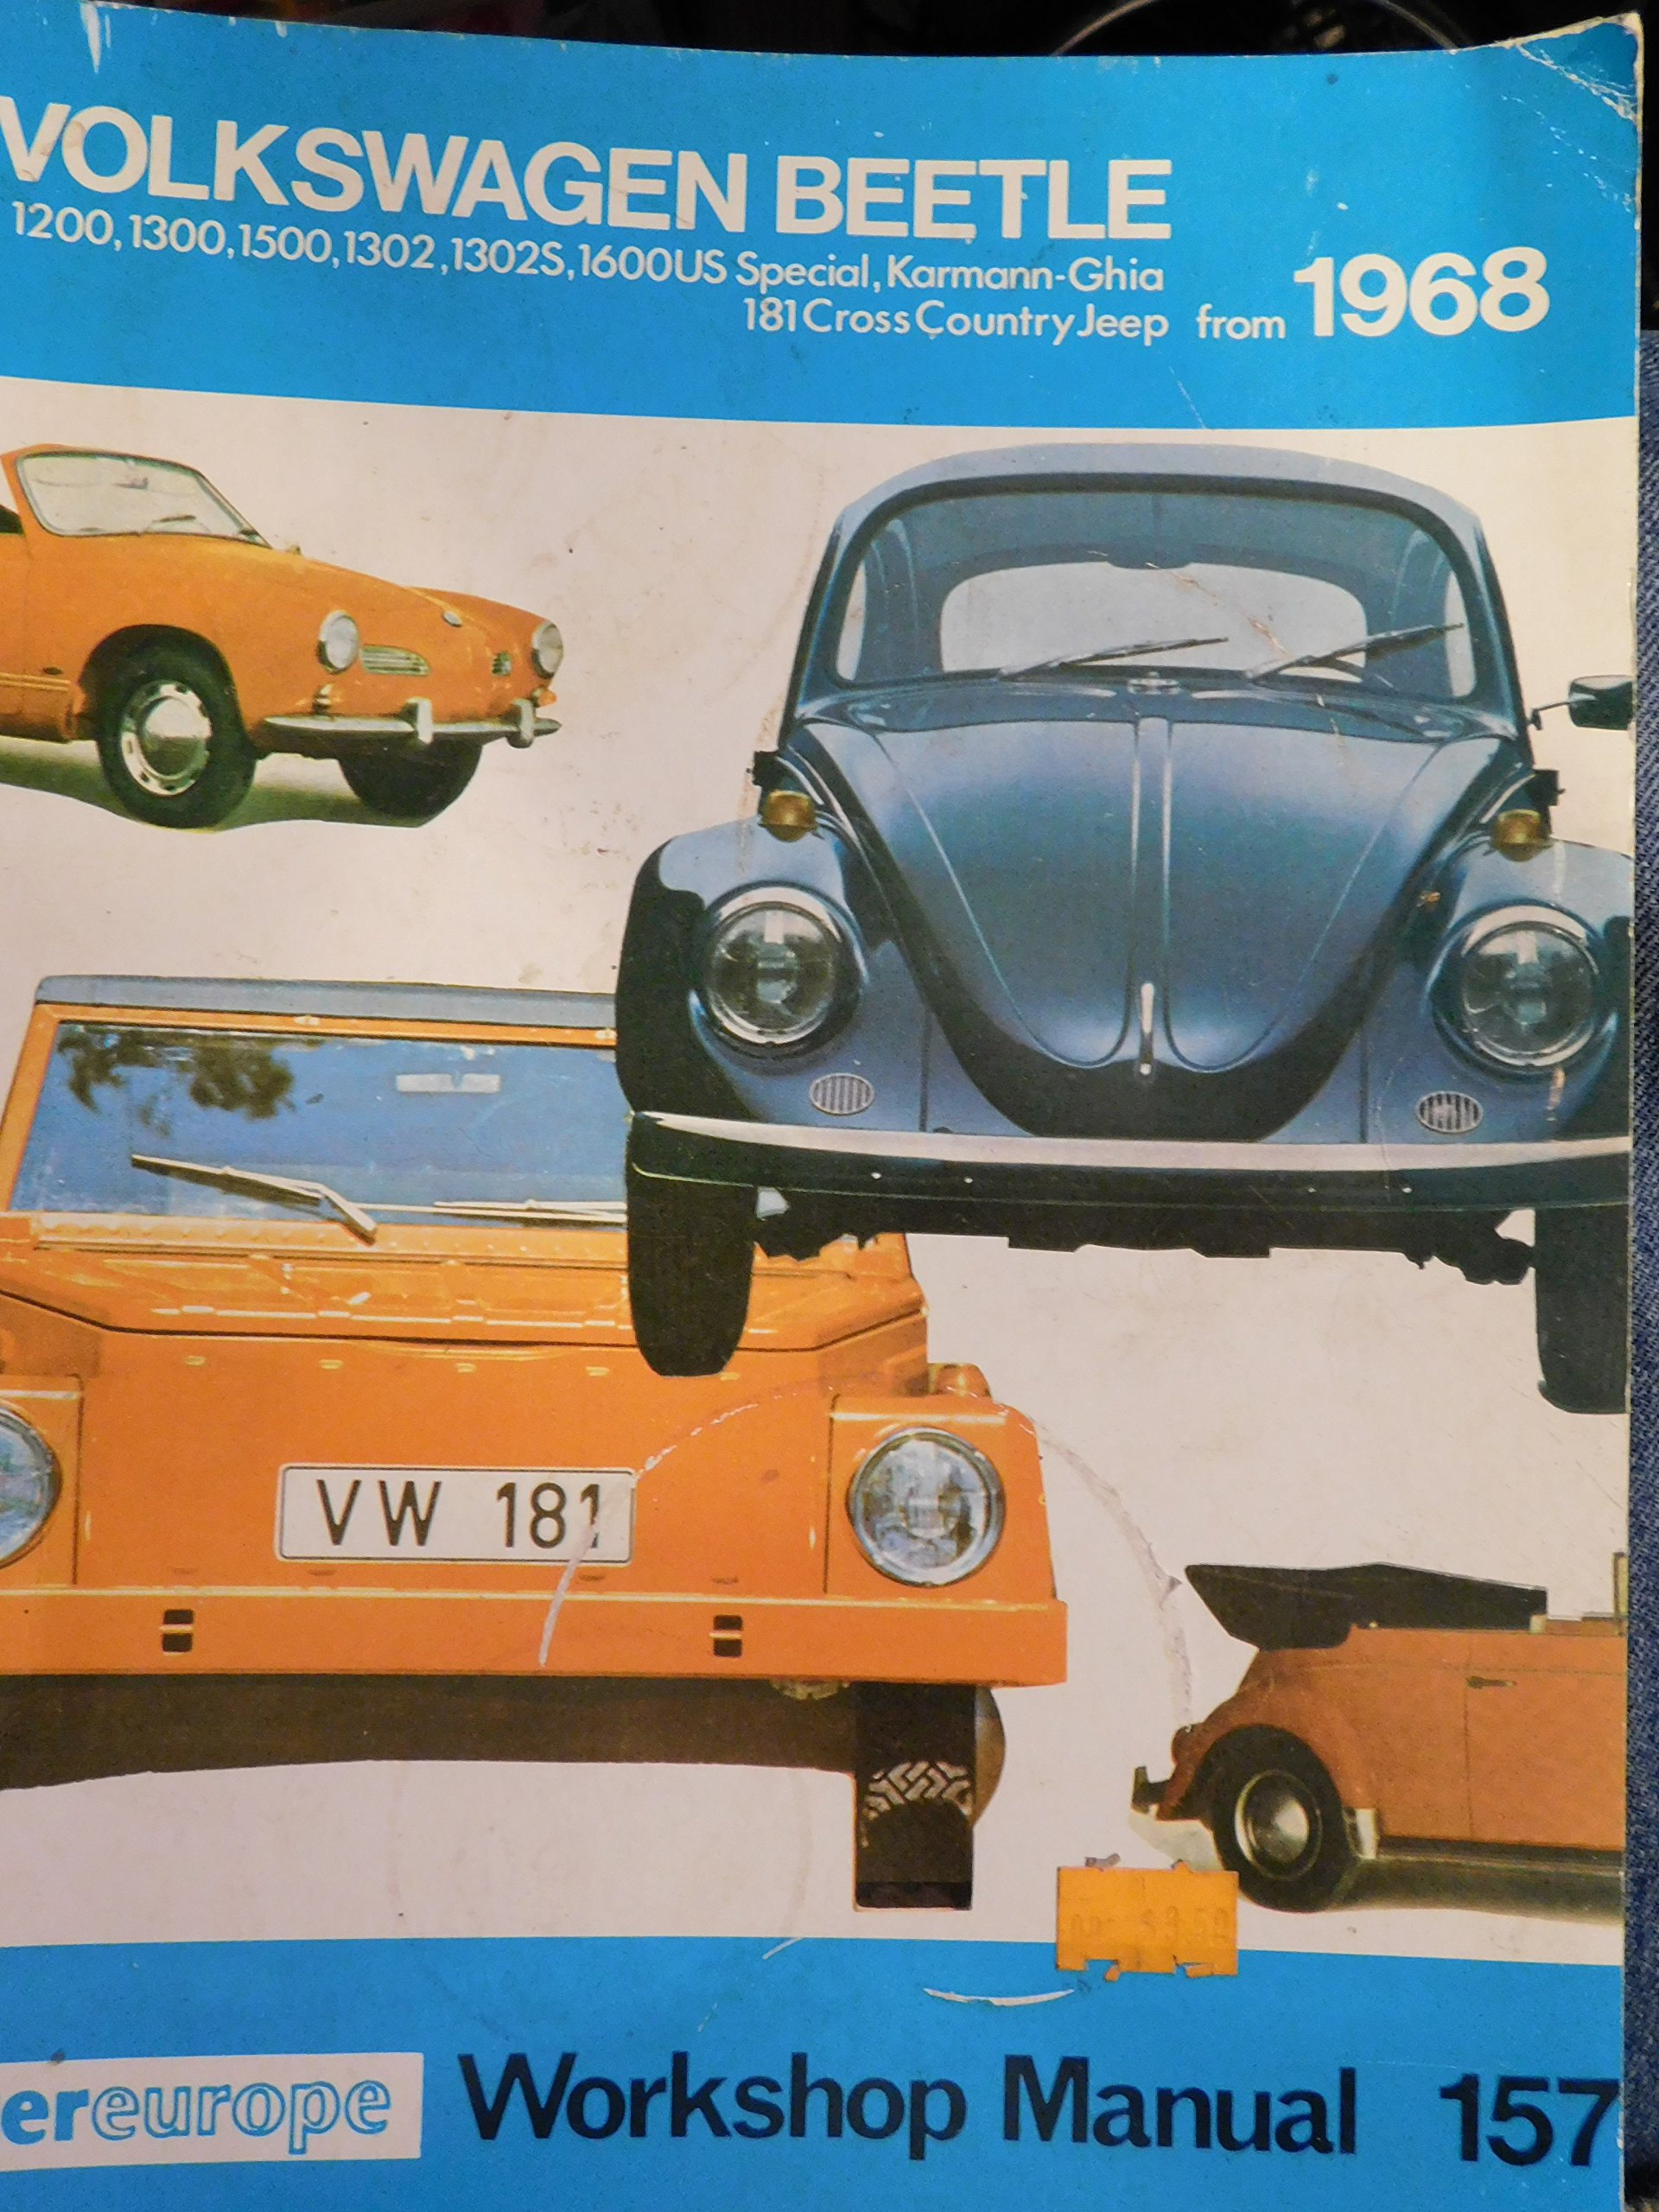 Workshop manual for Volkswagen Beetle: 1200, 1300, 1500 and 1600 c.c.  engine-including Karman Ghia and Type l8l from 1968: Paul Harris:  Amazon.com: Books